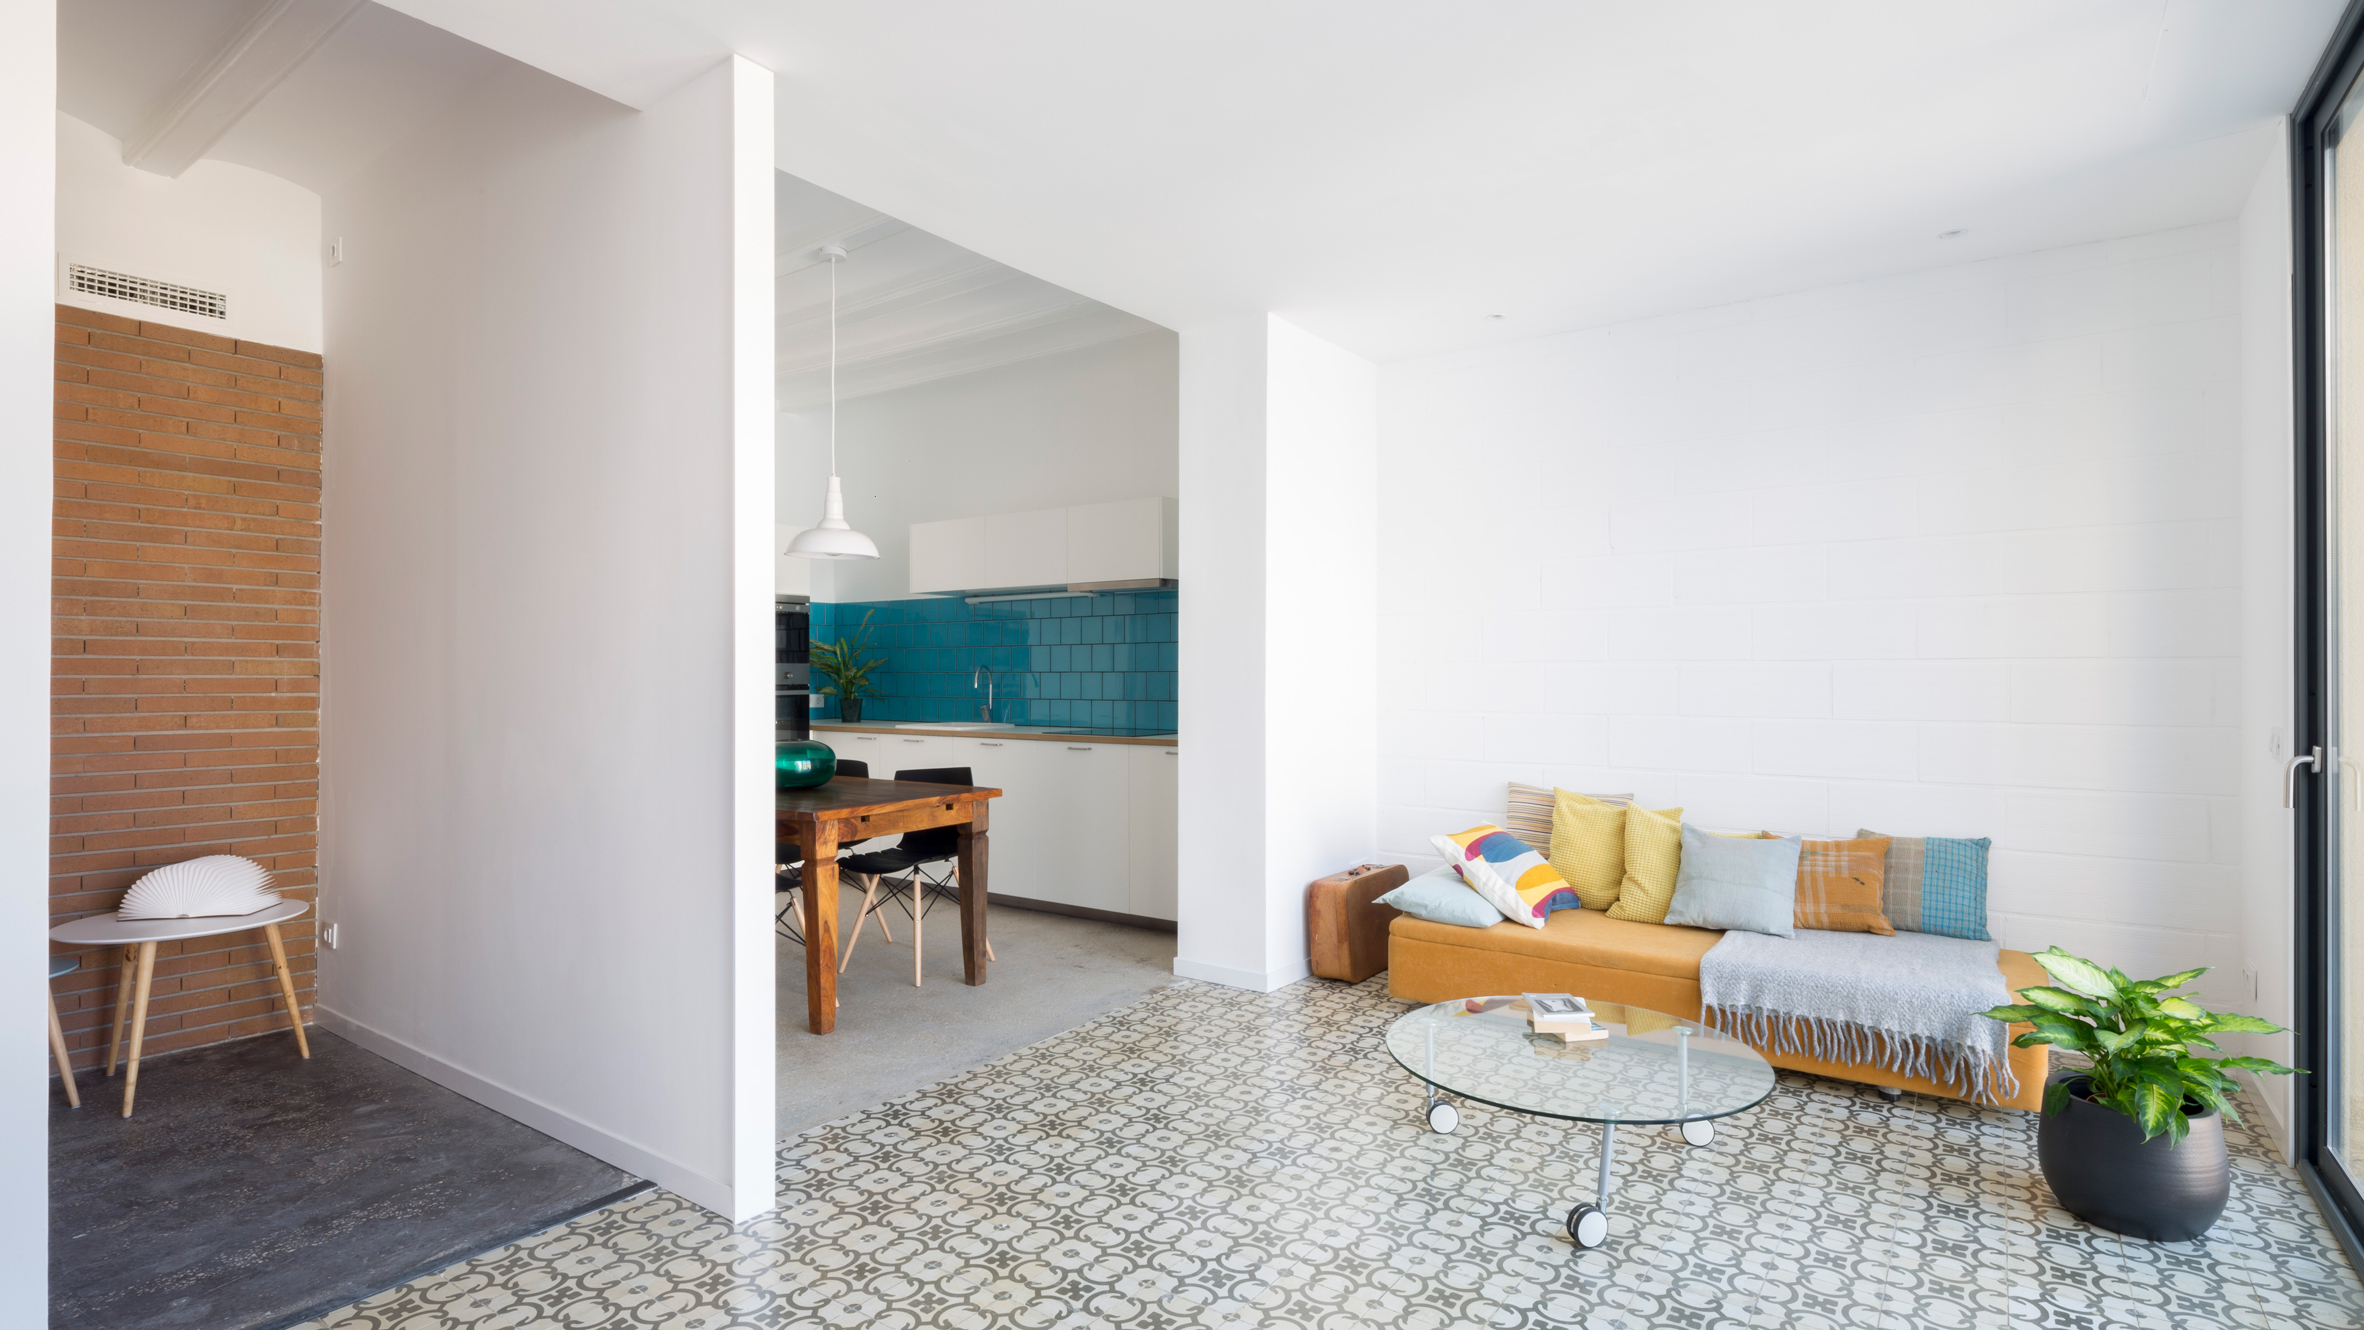 Patterned Tiles Define Rooms In Barcelona Bed And Breakfast By Nook Architects